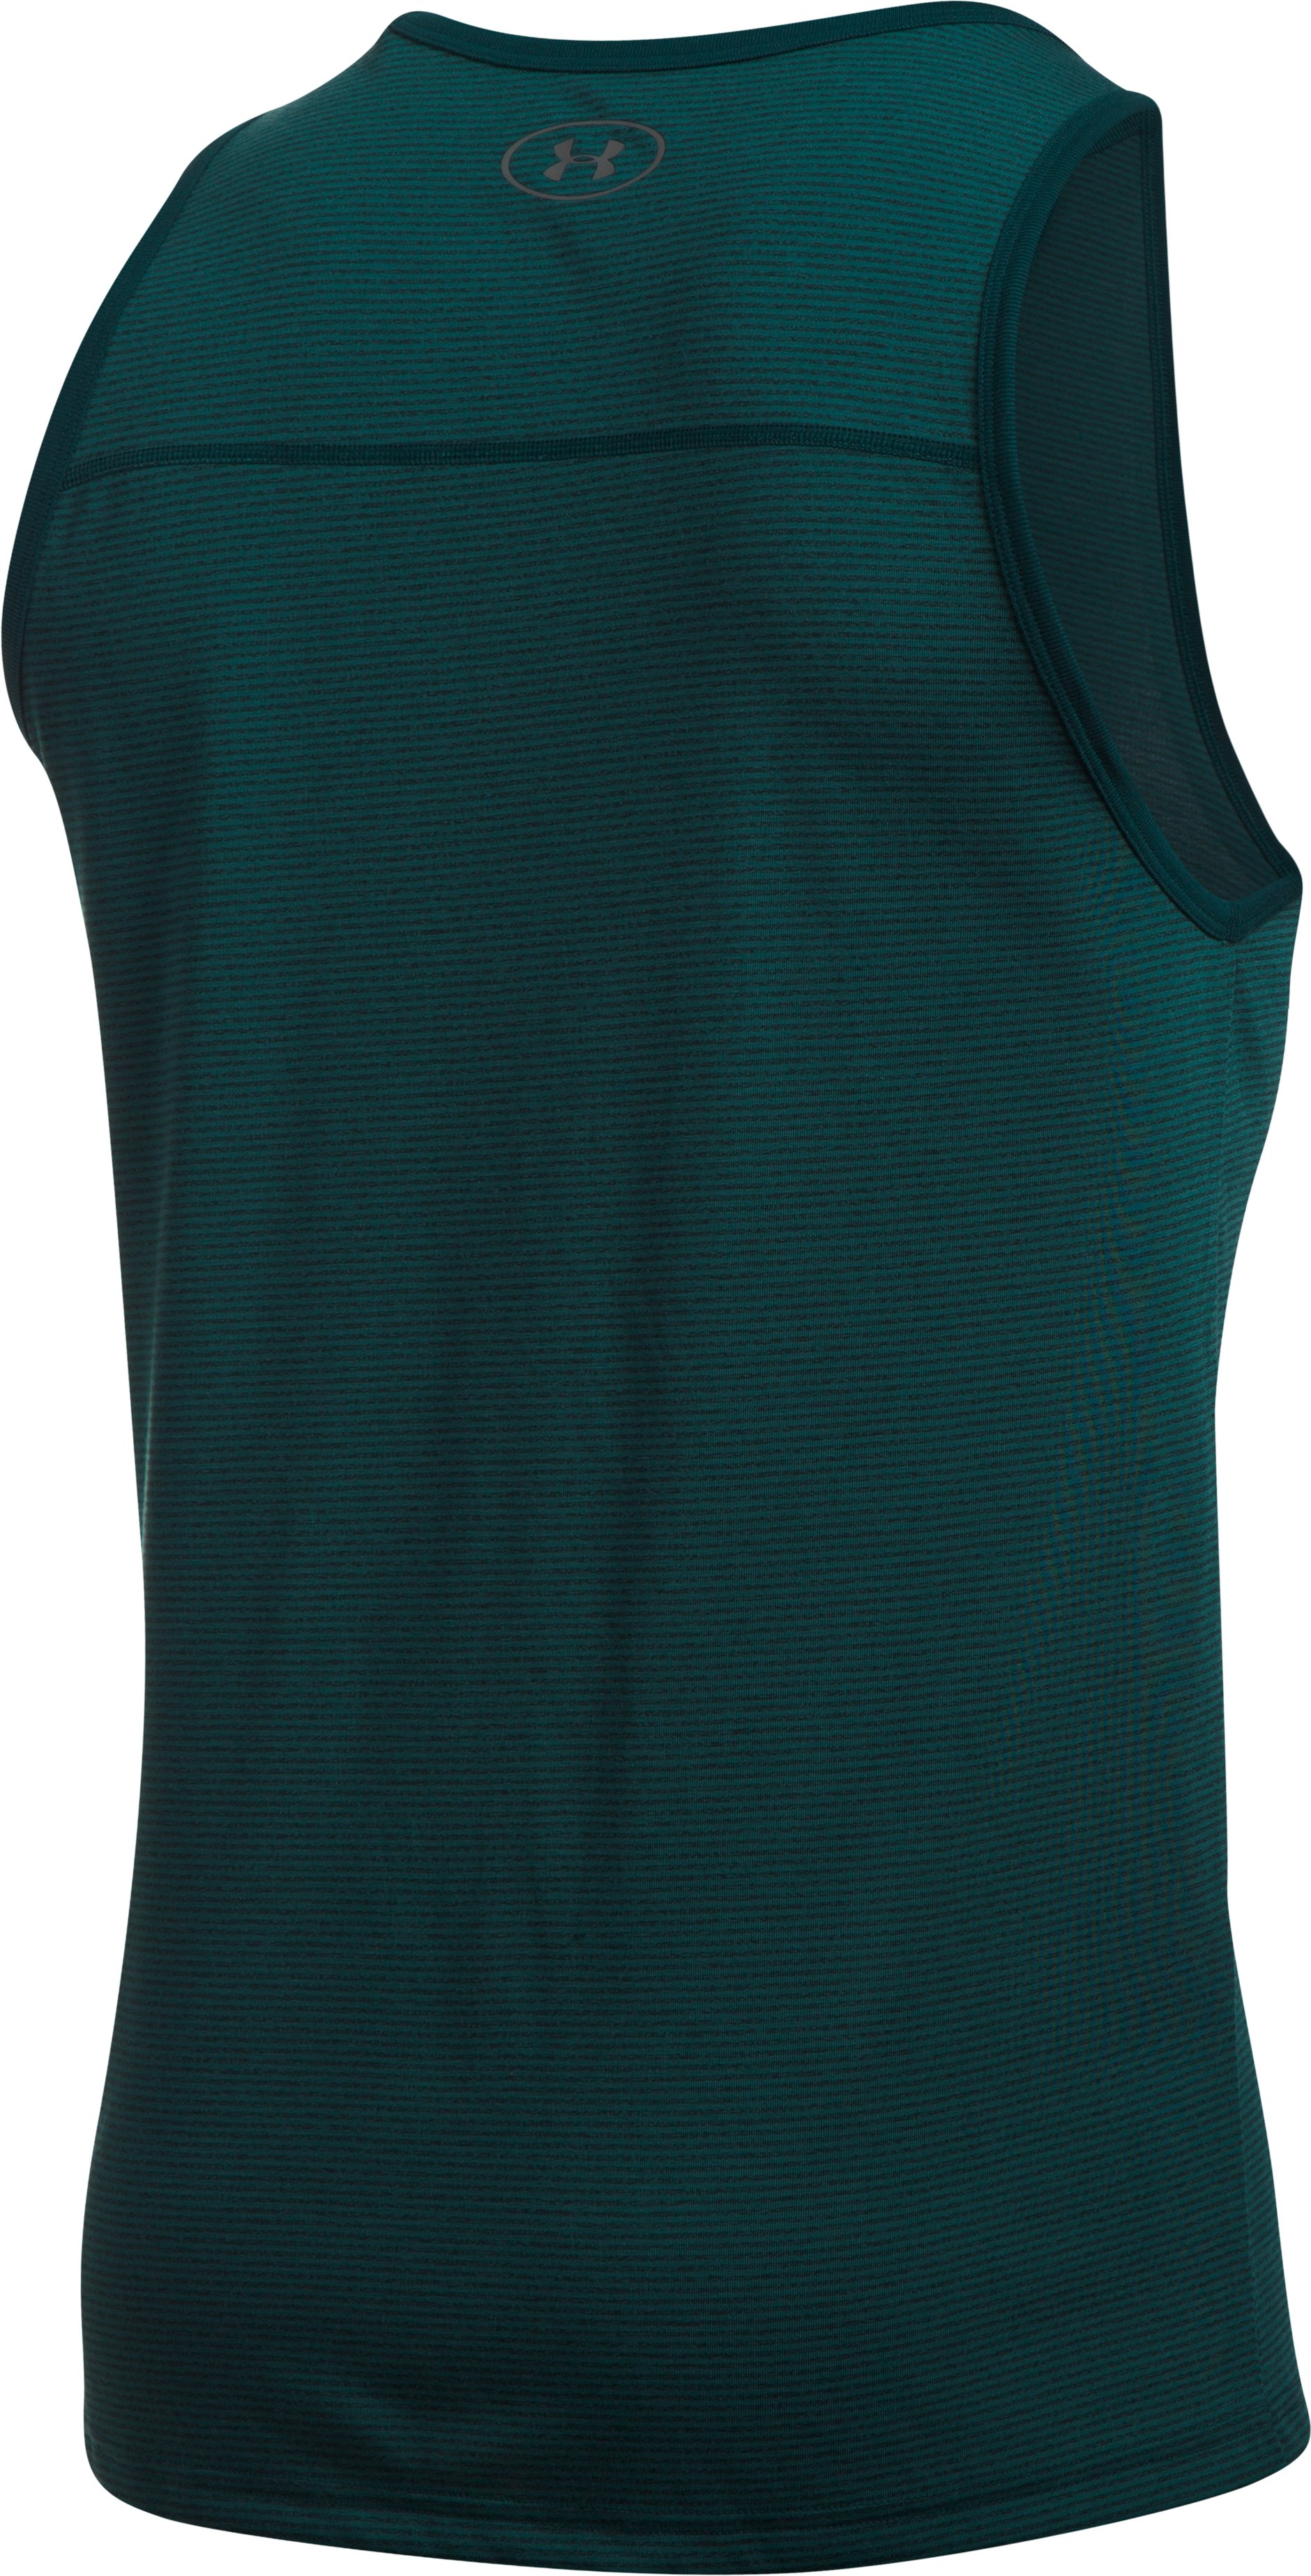 Men's UA Threadborne Siro Tank, ARDEN GREEN